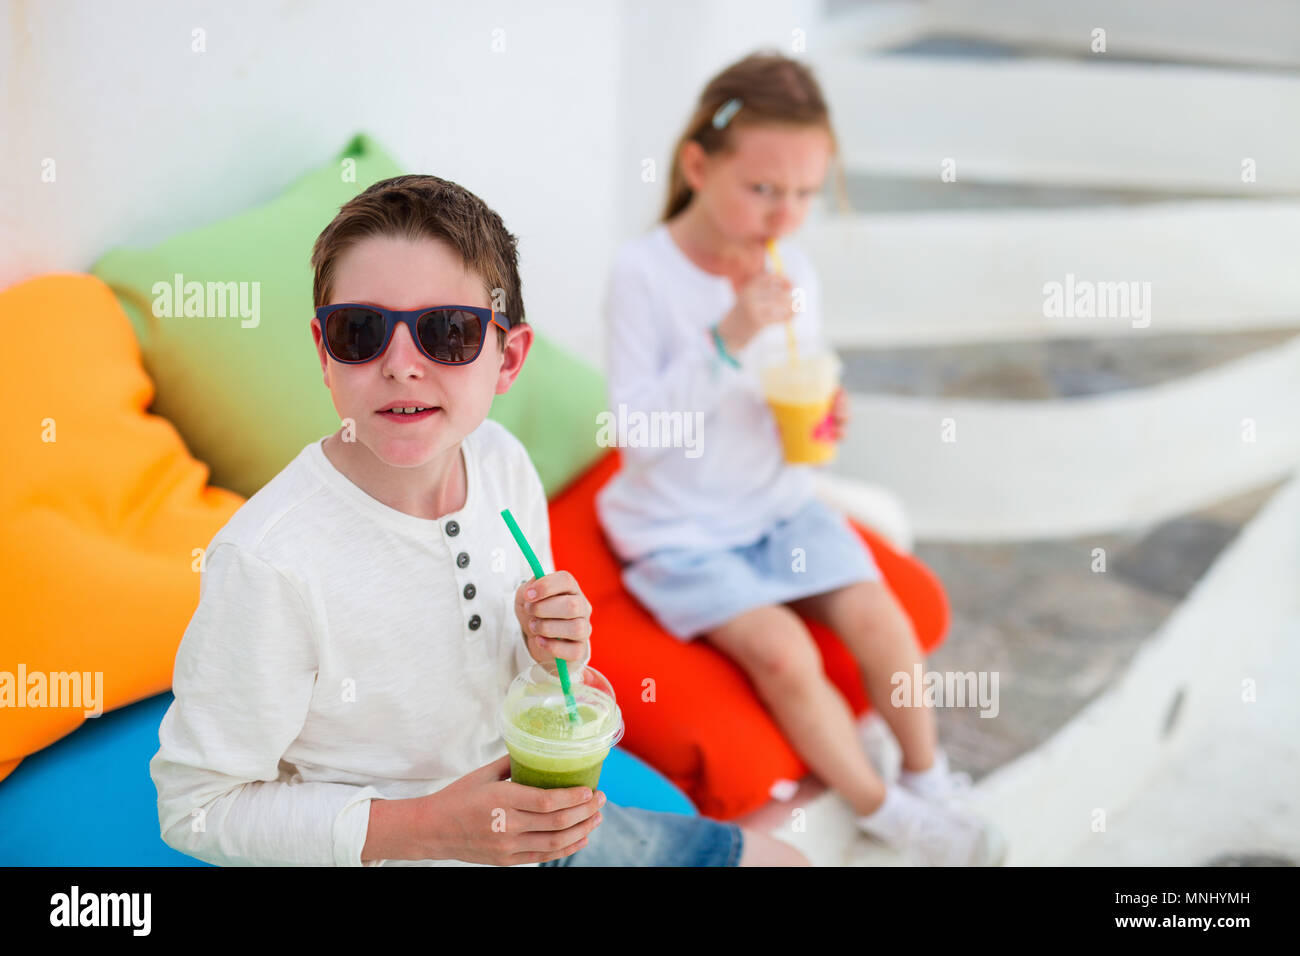 Two cute kids brother and sister drinking fresh smoothies on a colorful pillows at outdoor cafe on summer day Stock Photo